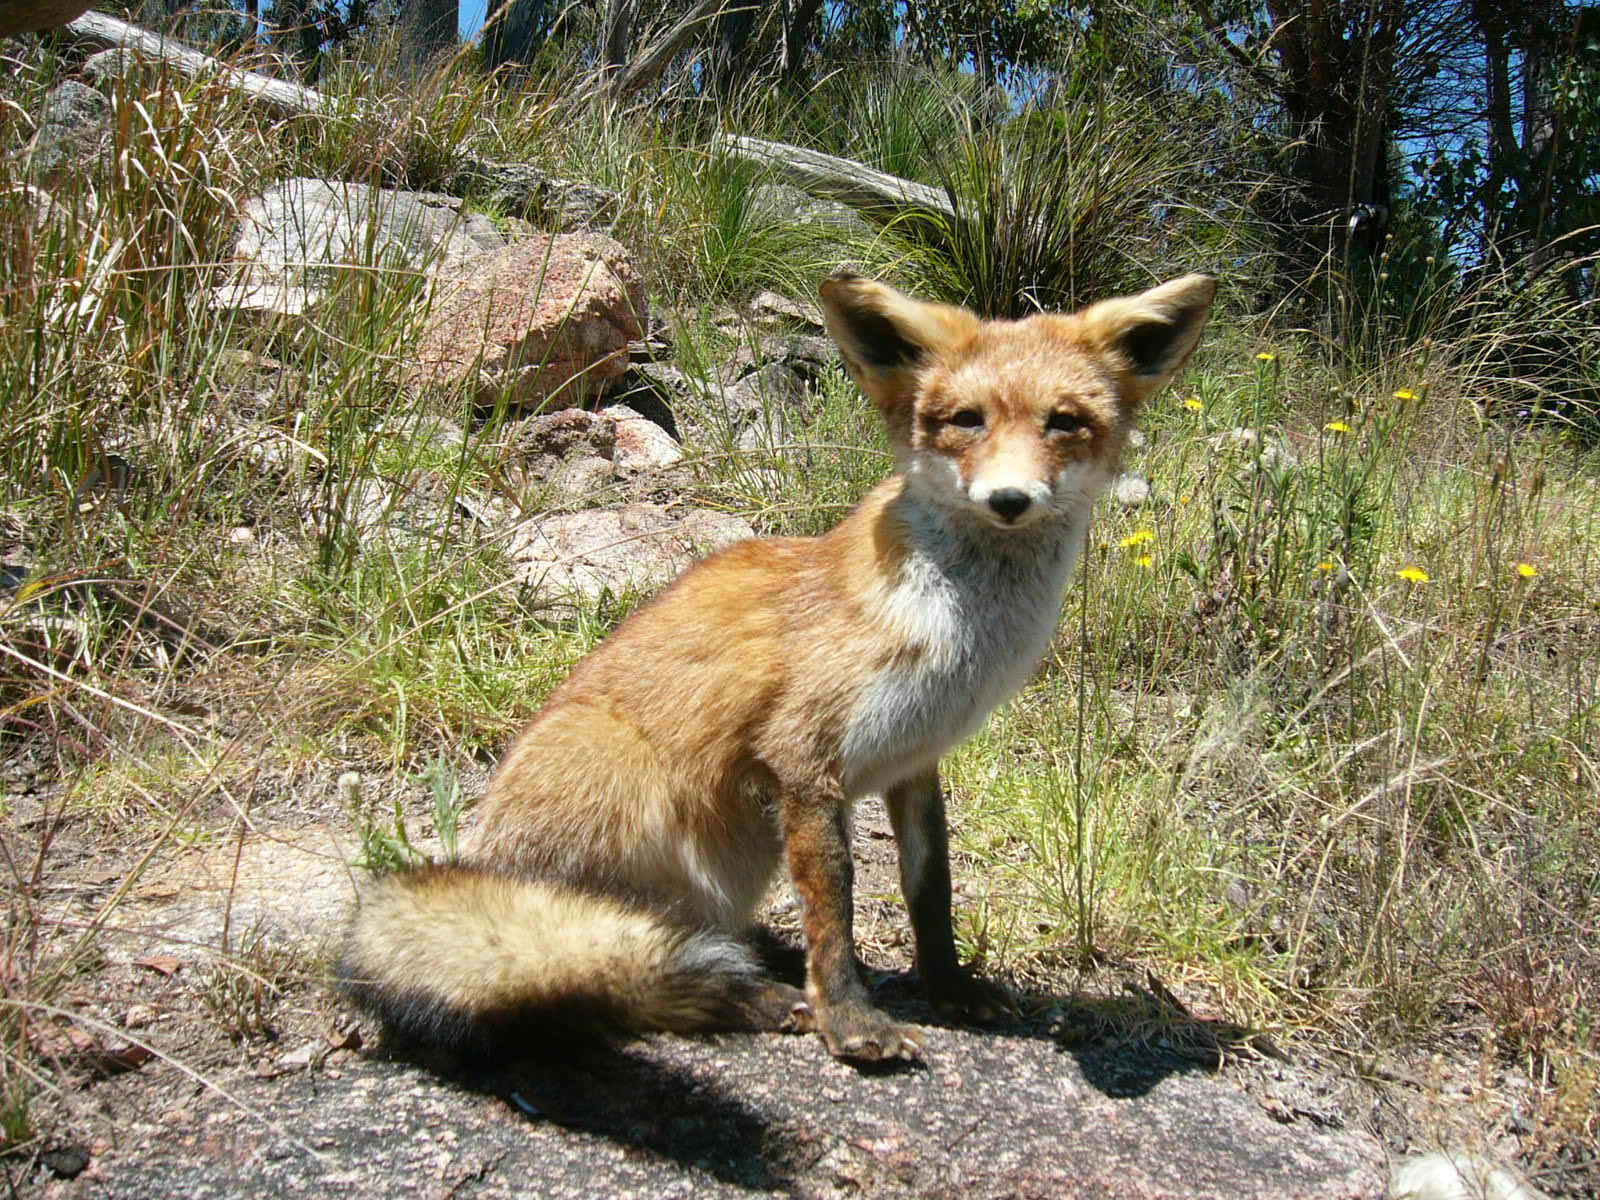 Pet Fox For Sale Australia Male Red Fox Lifesize Mount 660 00